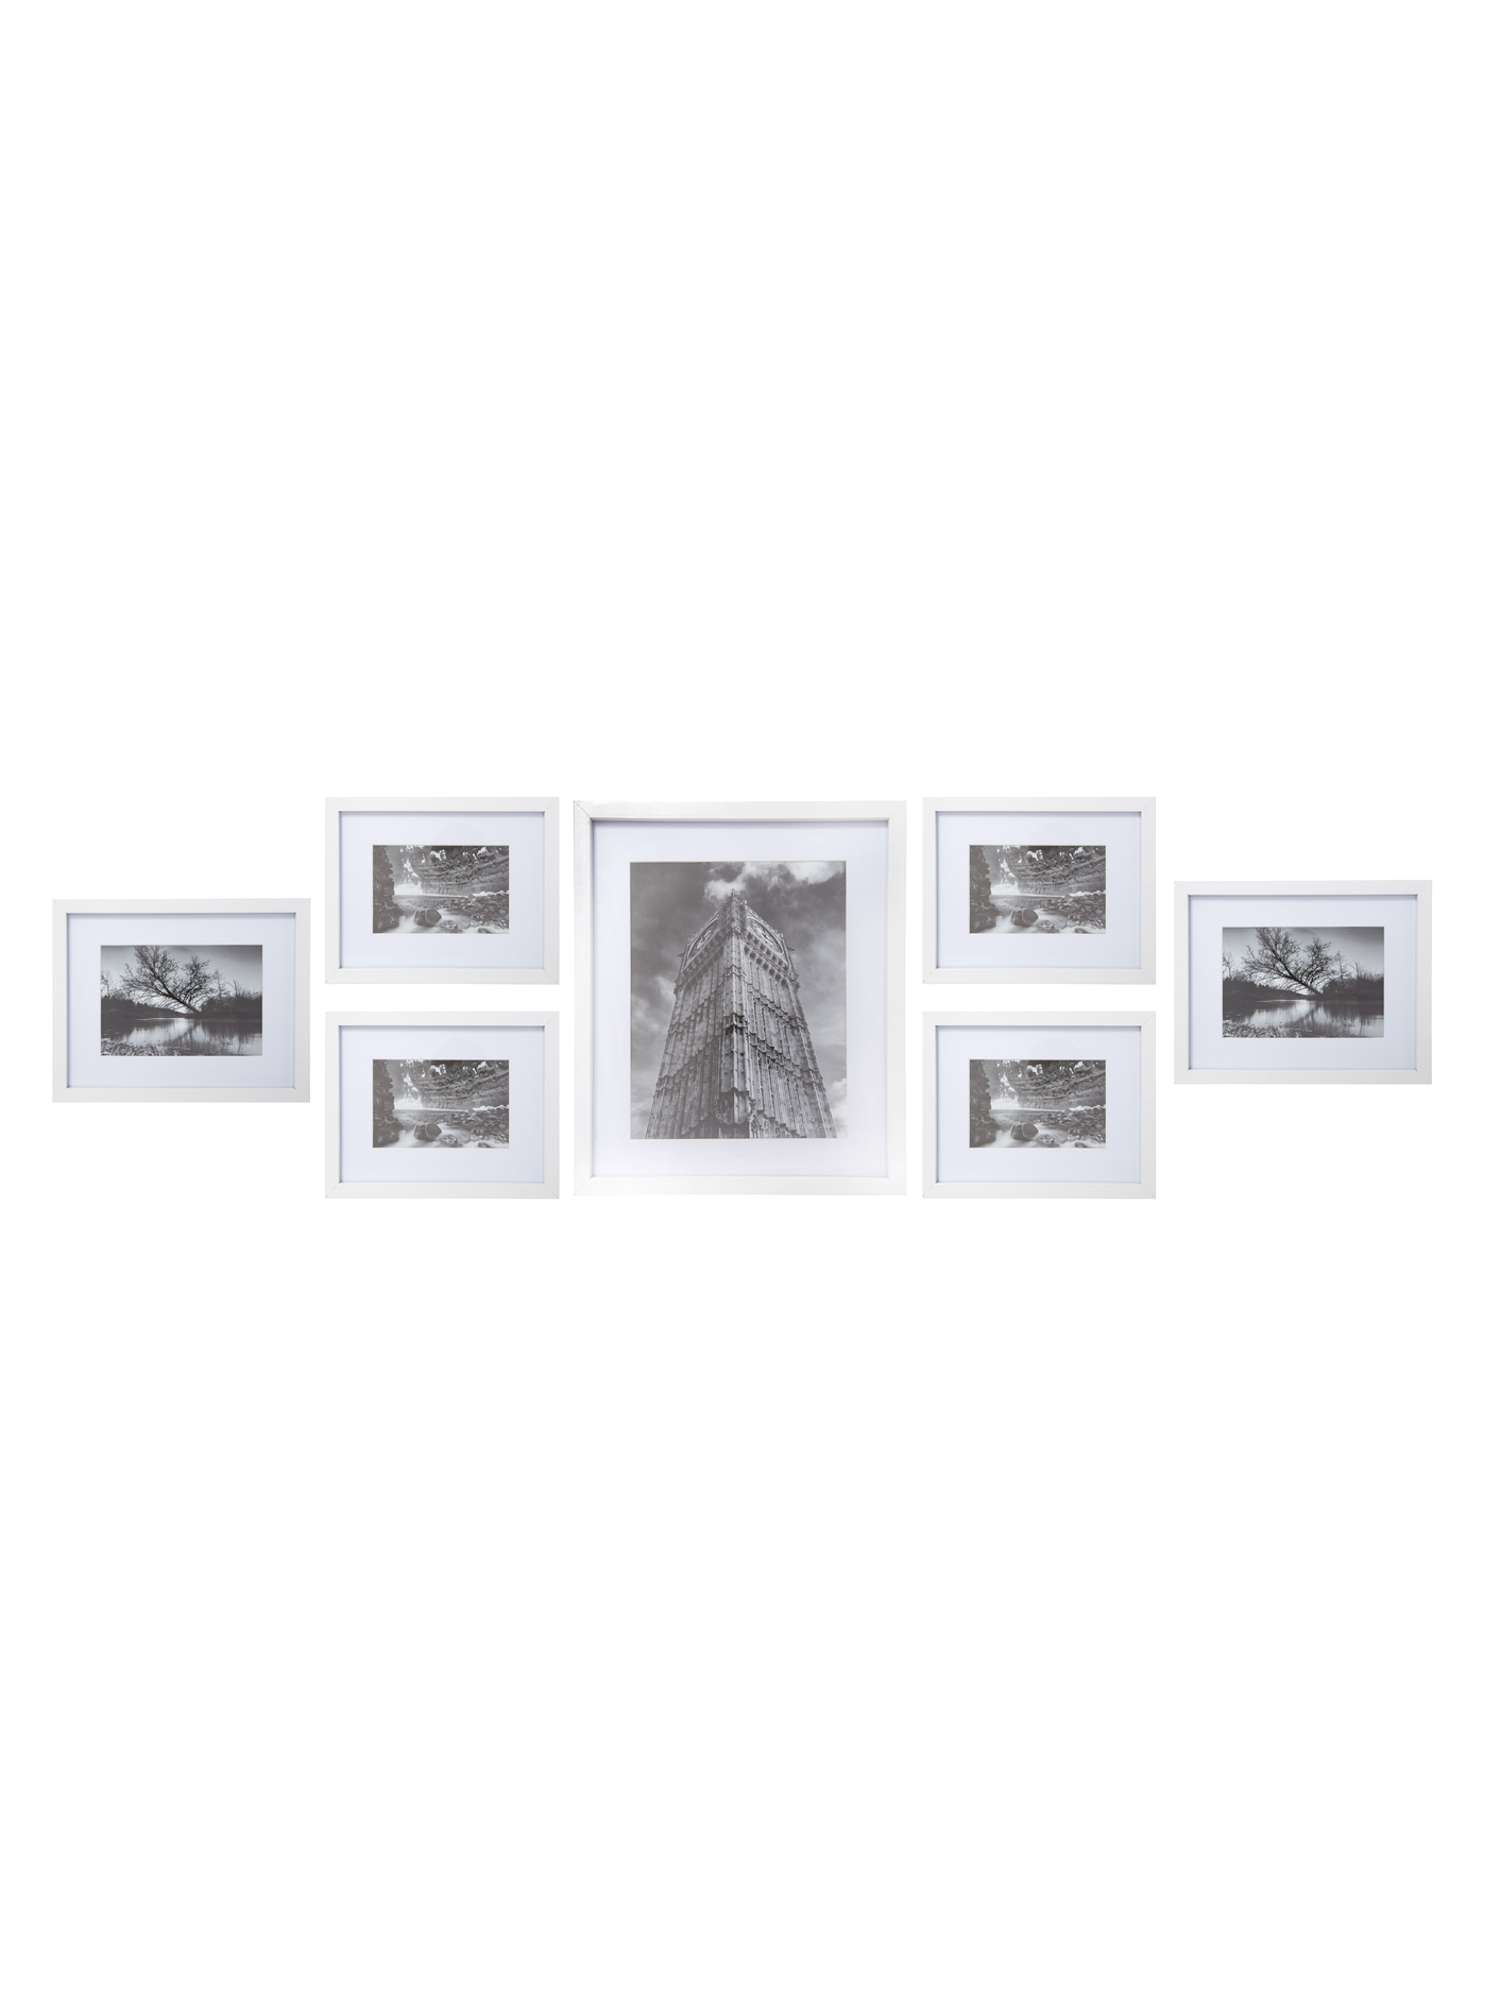 Linea White Wood 7 Piece Gallery Frame Set - House of Fraser